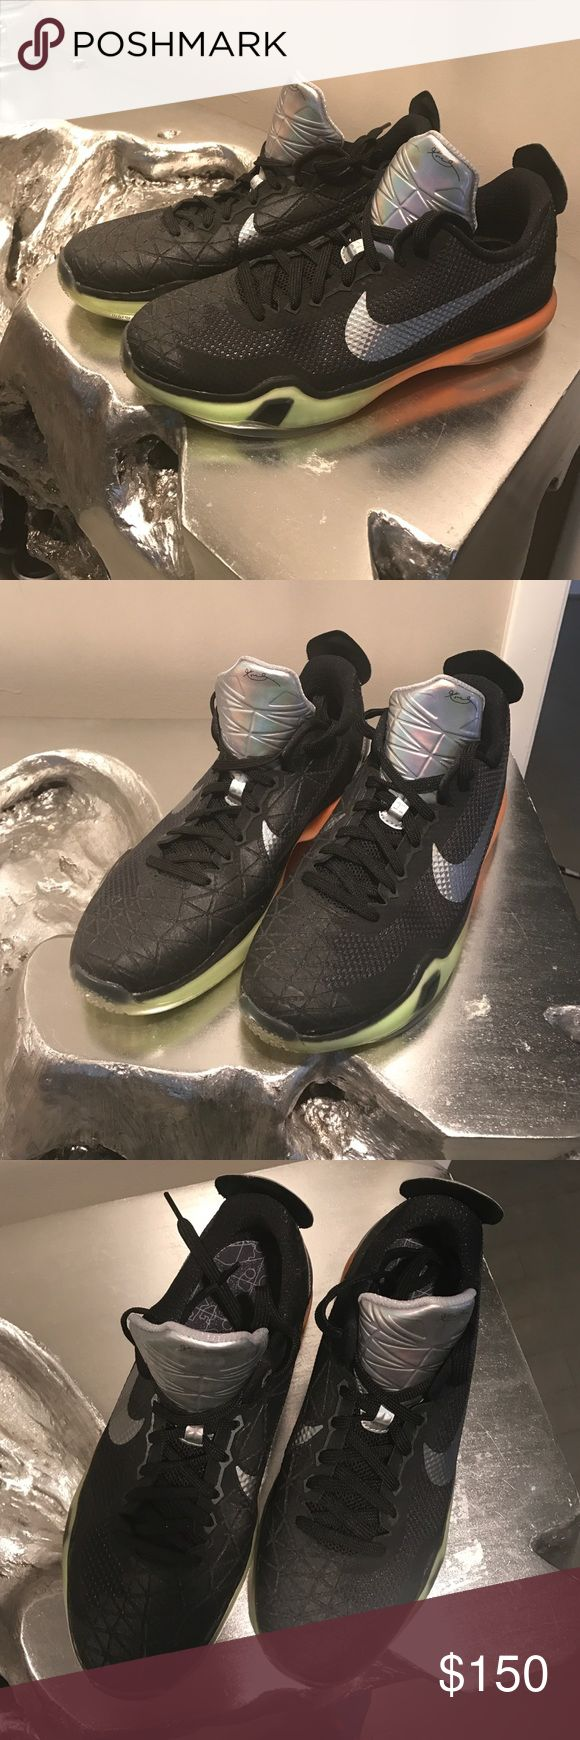 Kobe Bryant Nike's New Kobe Bryant shoes. Worn once to the gym (I'm a personal trainer). No box Nike Shoes Athletic Shoes